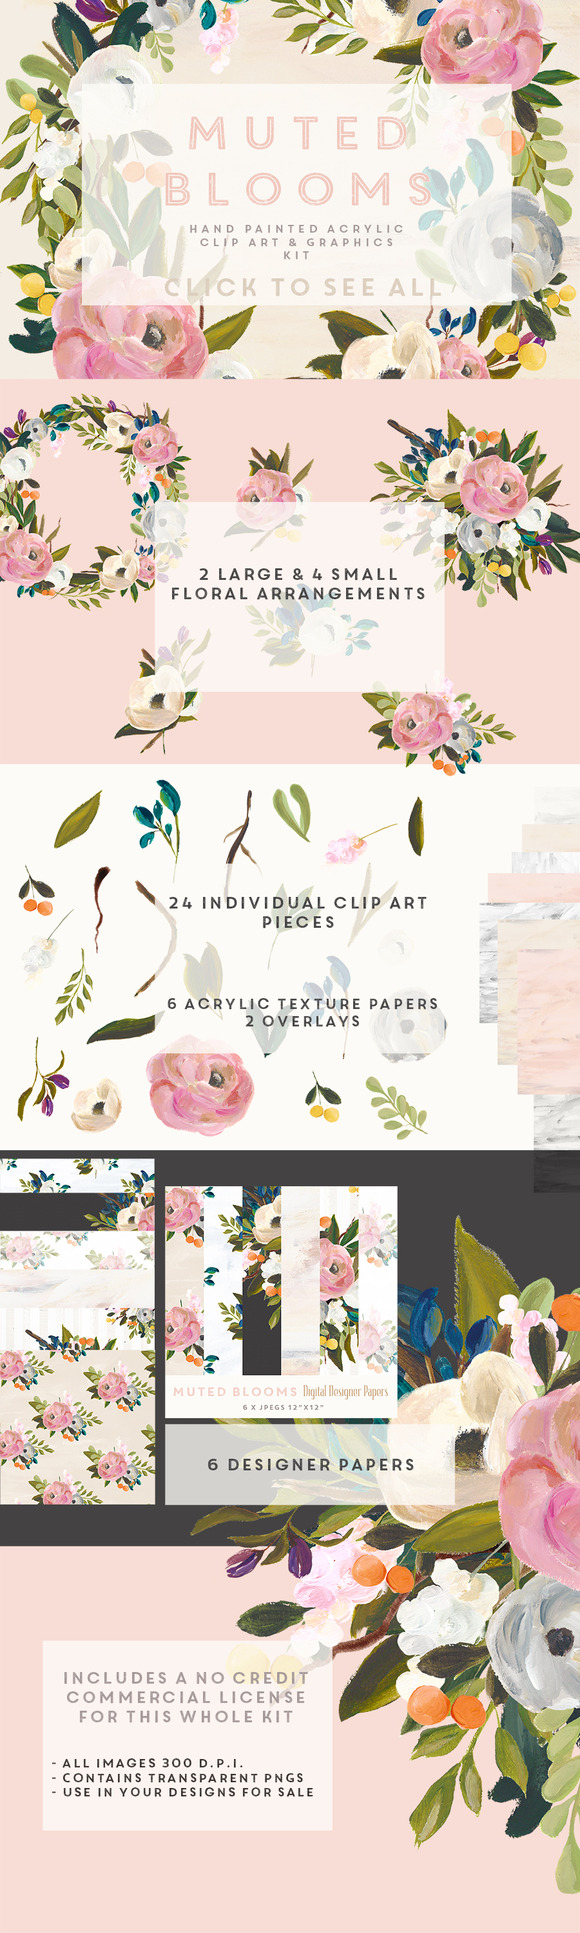 Acrylic Clip Art Kit Muted Blooms